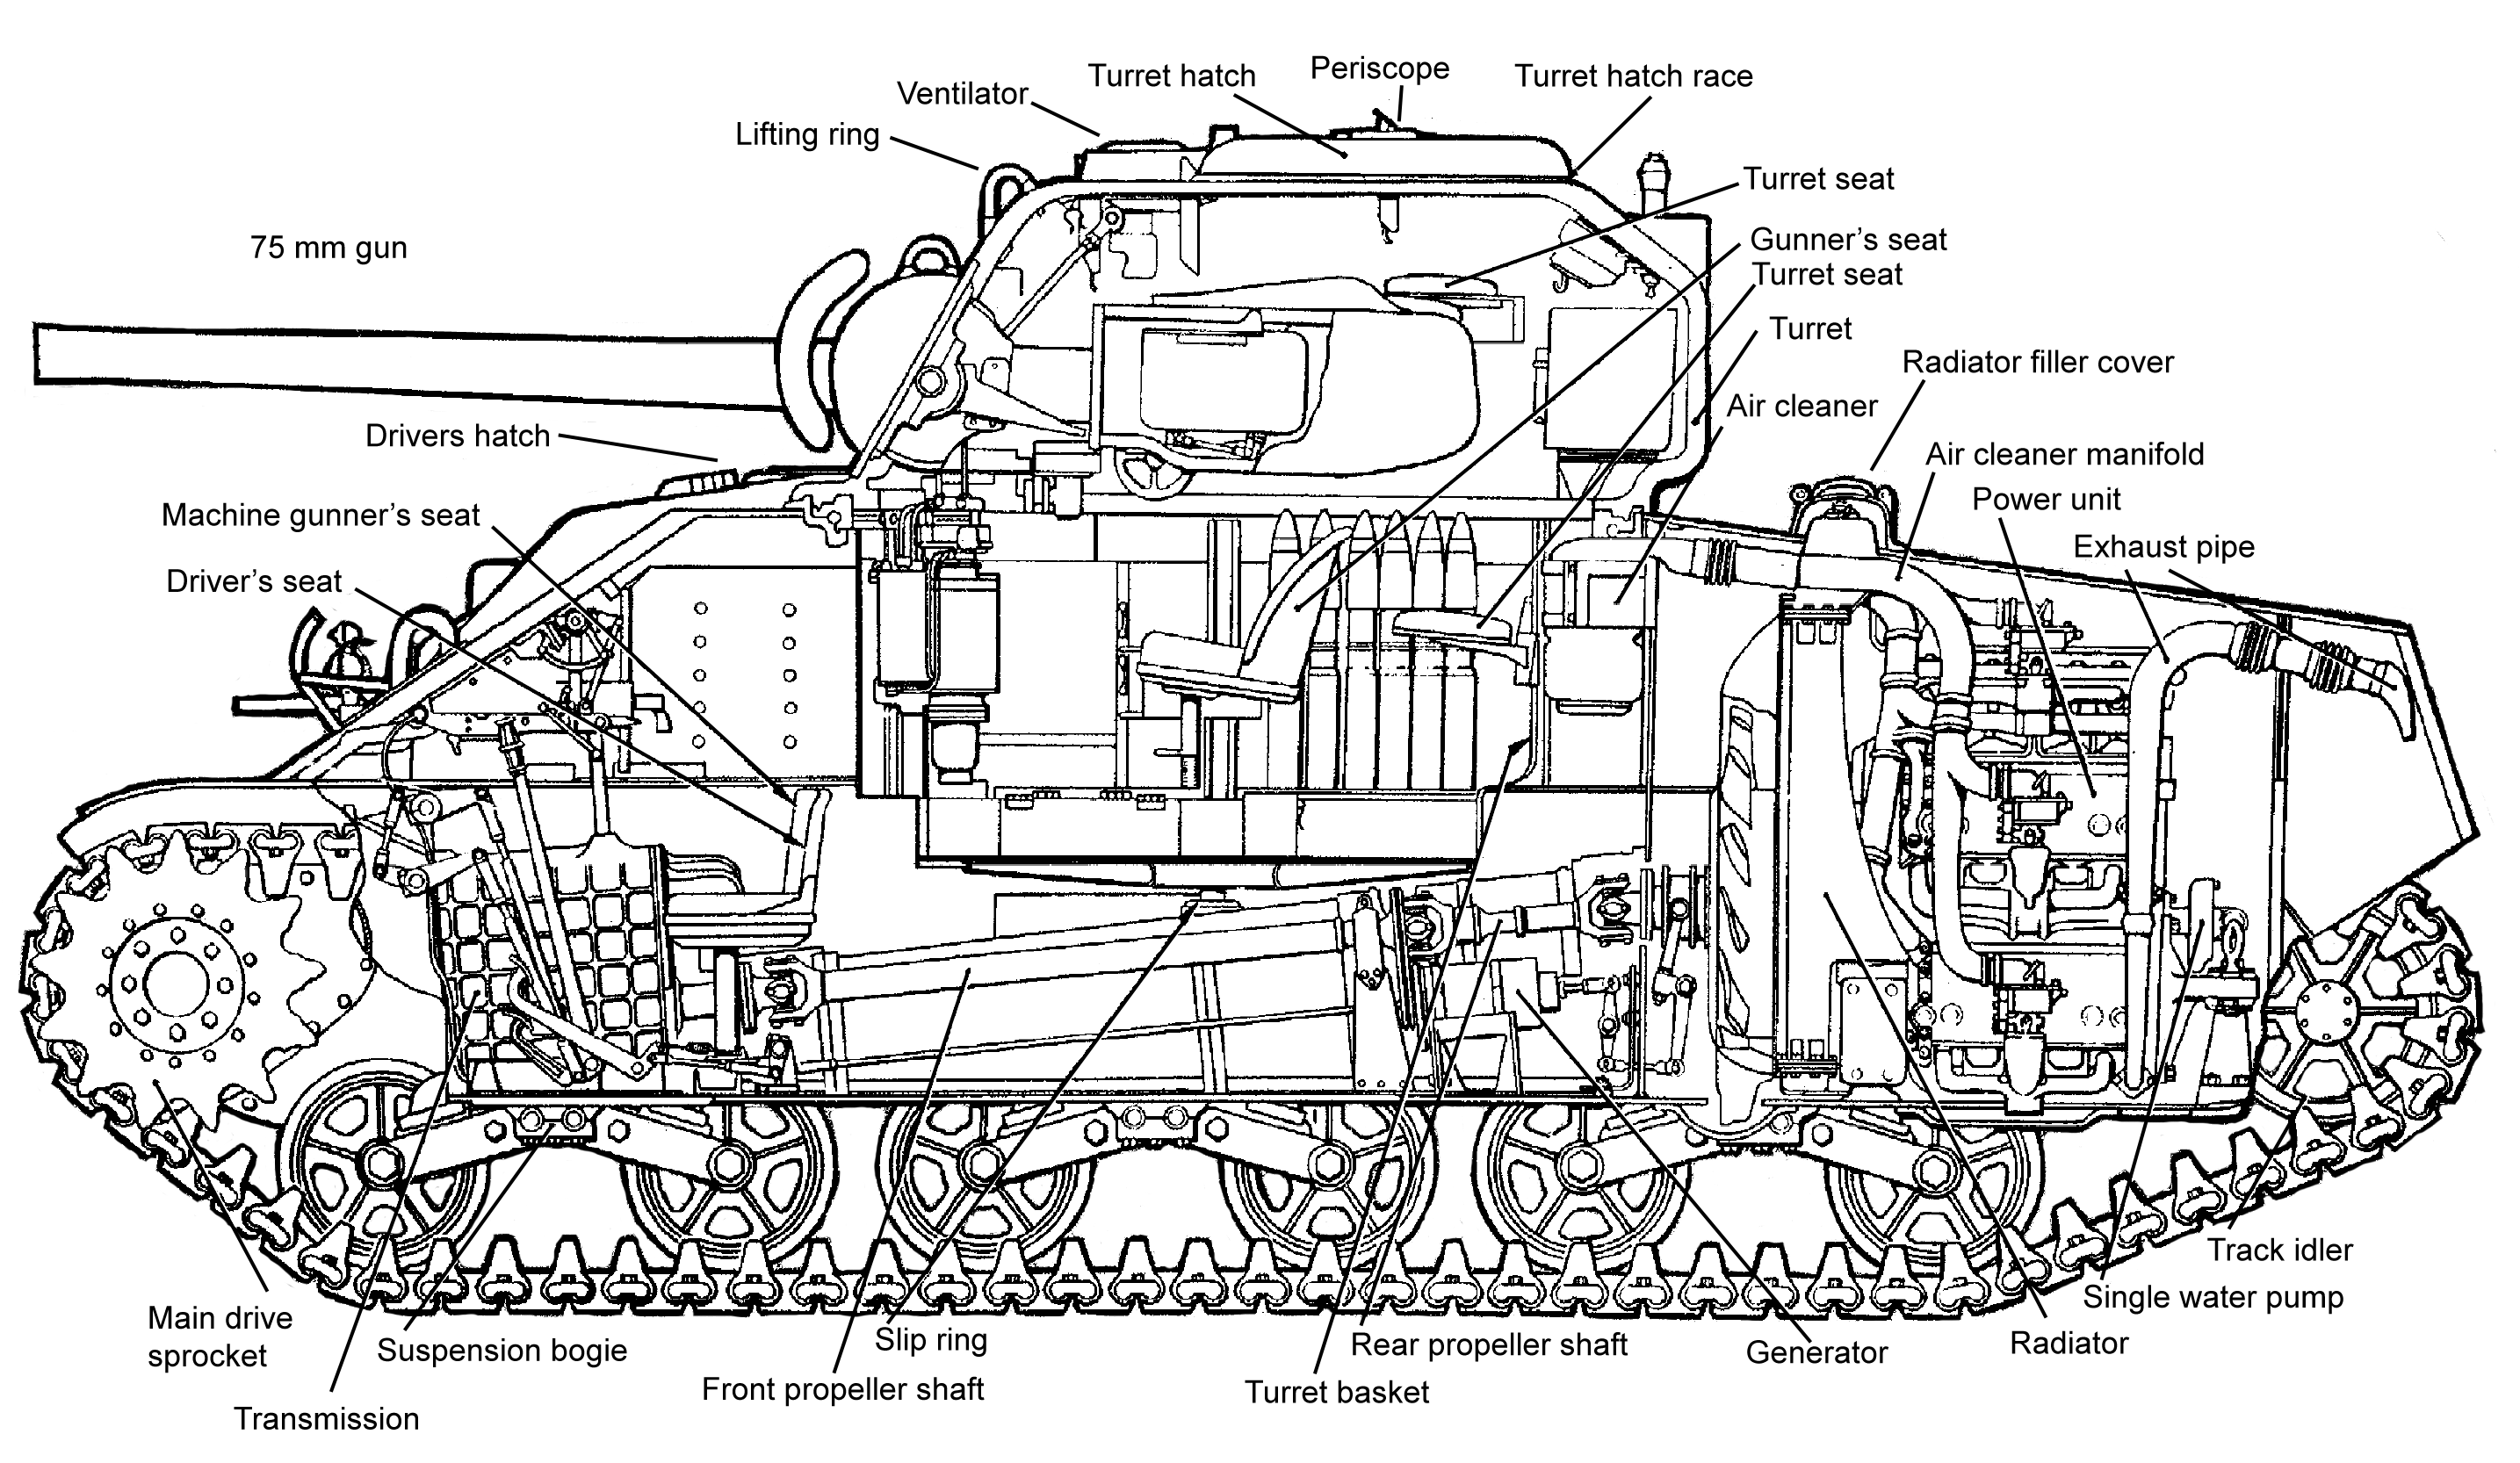 Tank Engine Diagram on porsche 911 parts diagram